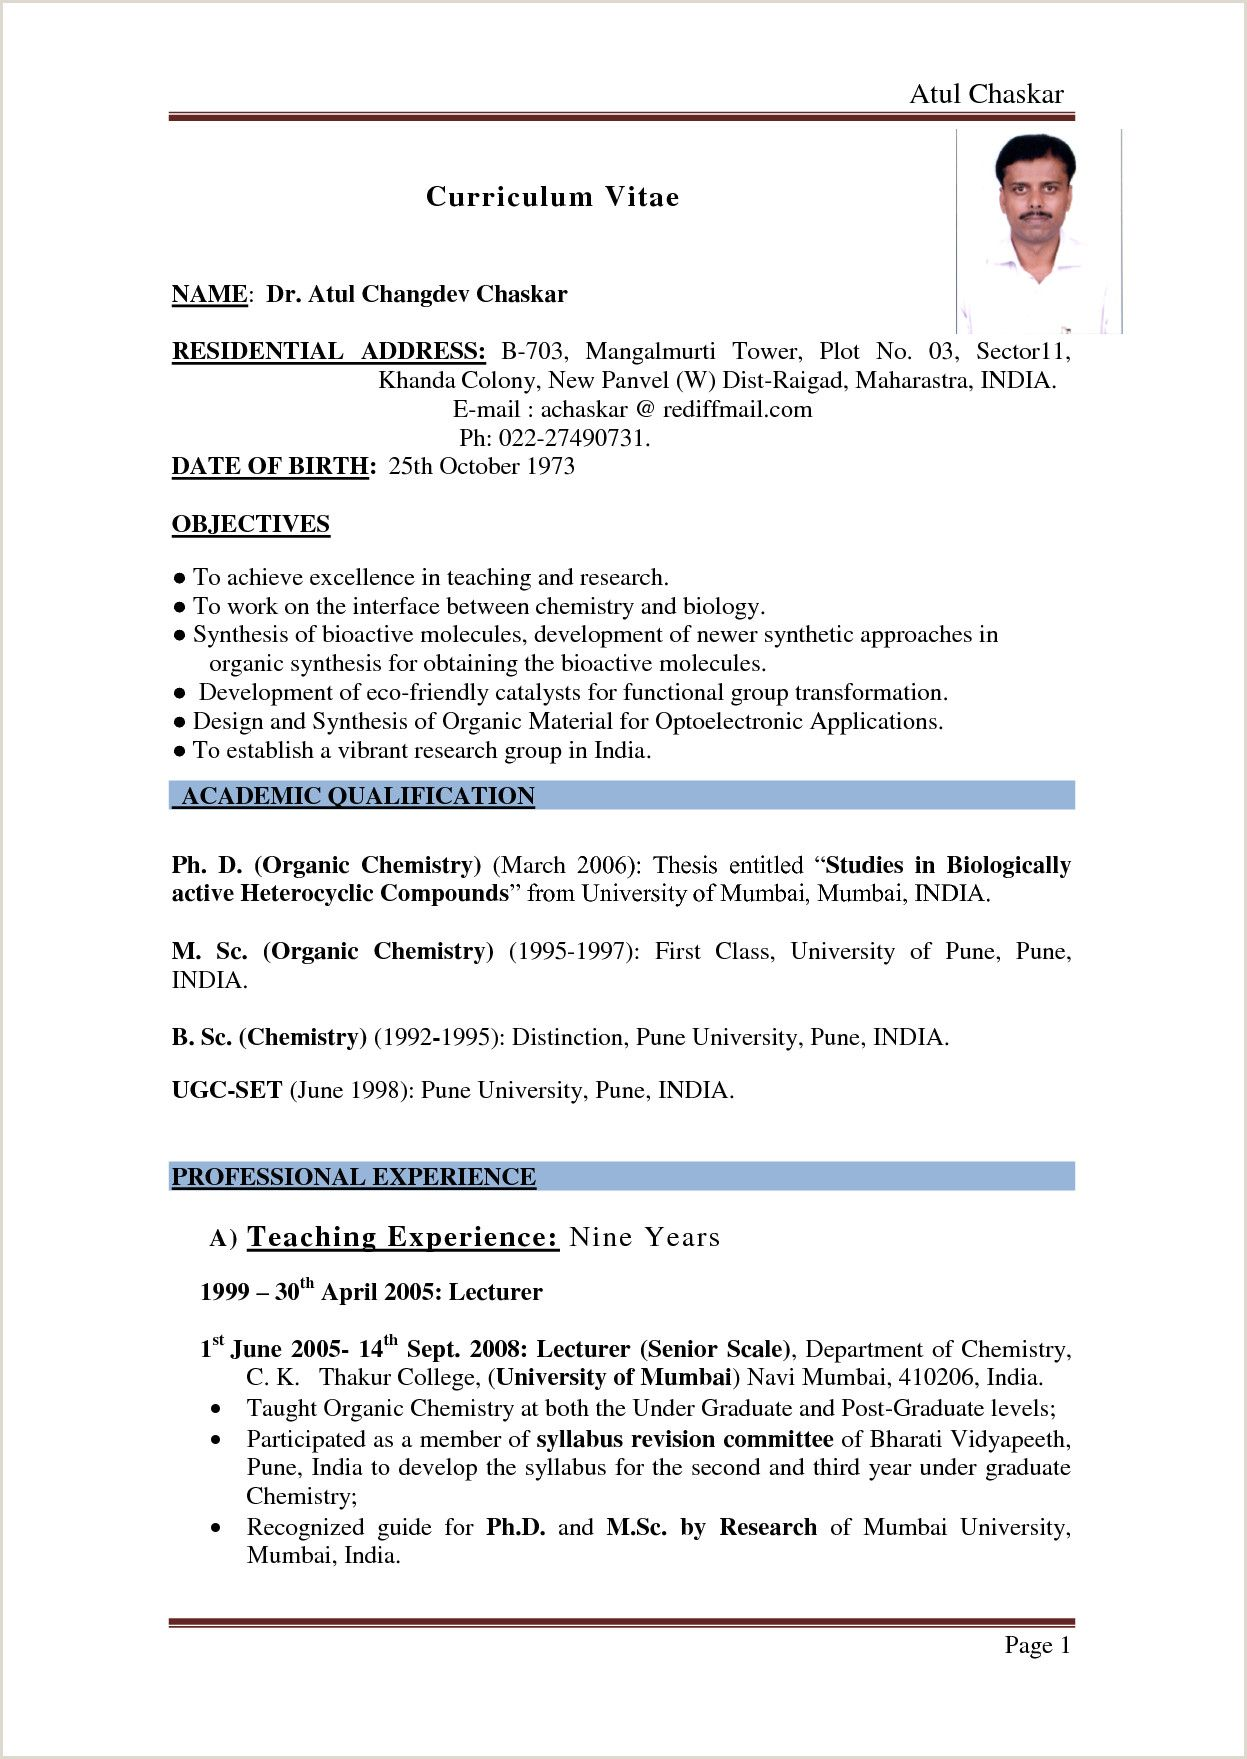 resume format for bsc chemistry freshers pdf best examples students sample chaplain Resume Resume Format For Bsc Students